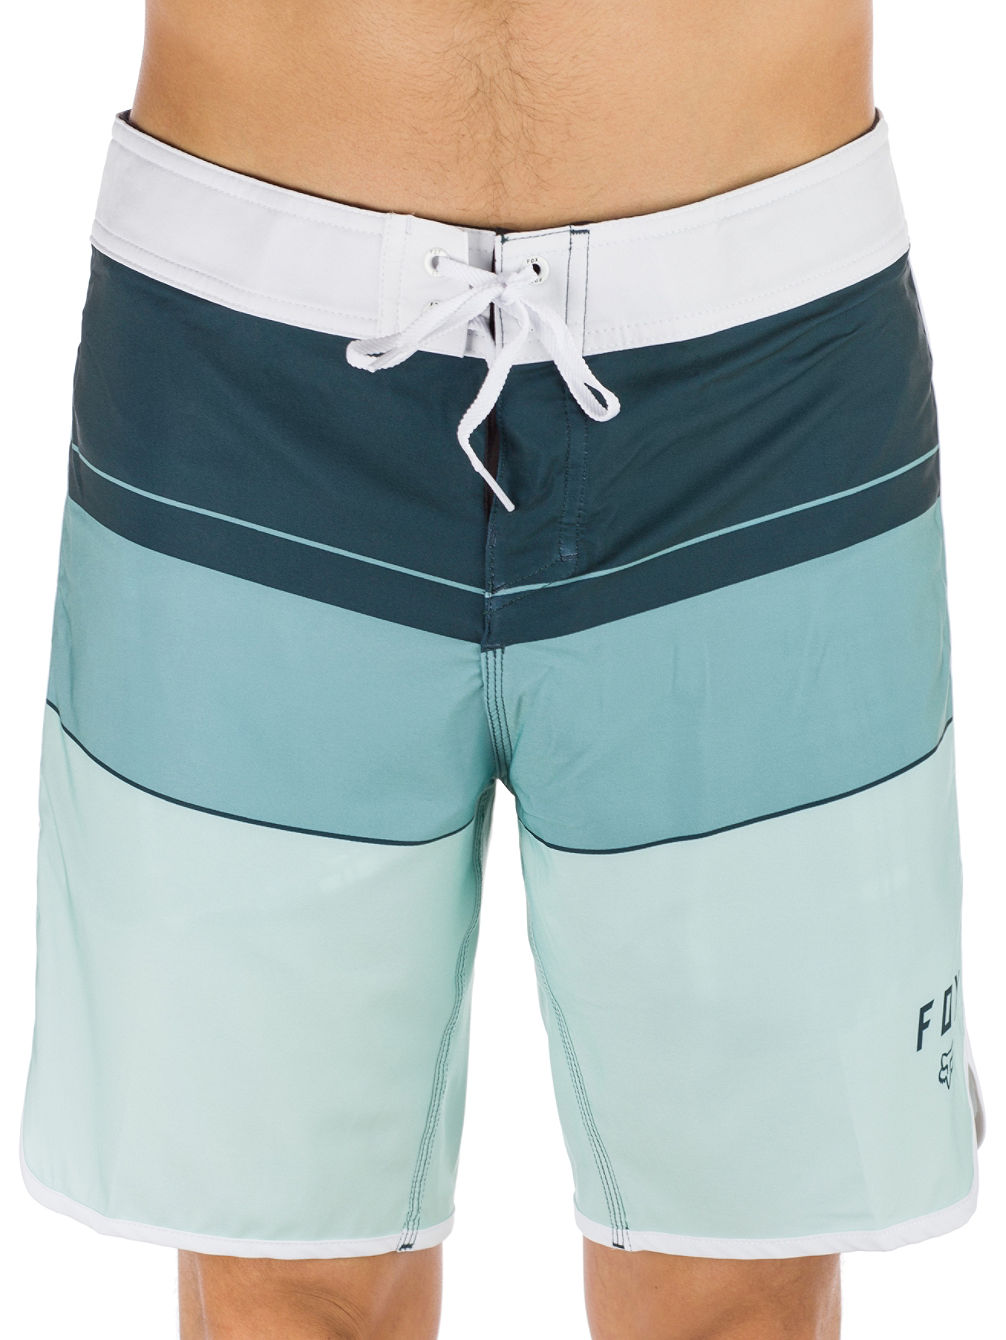 Step Up Stretch Boardshorts